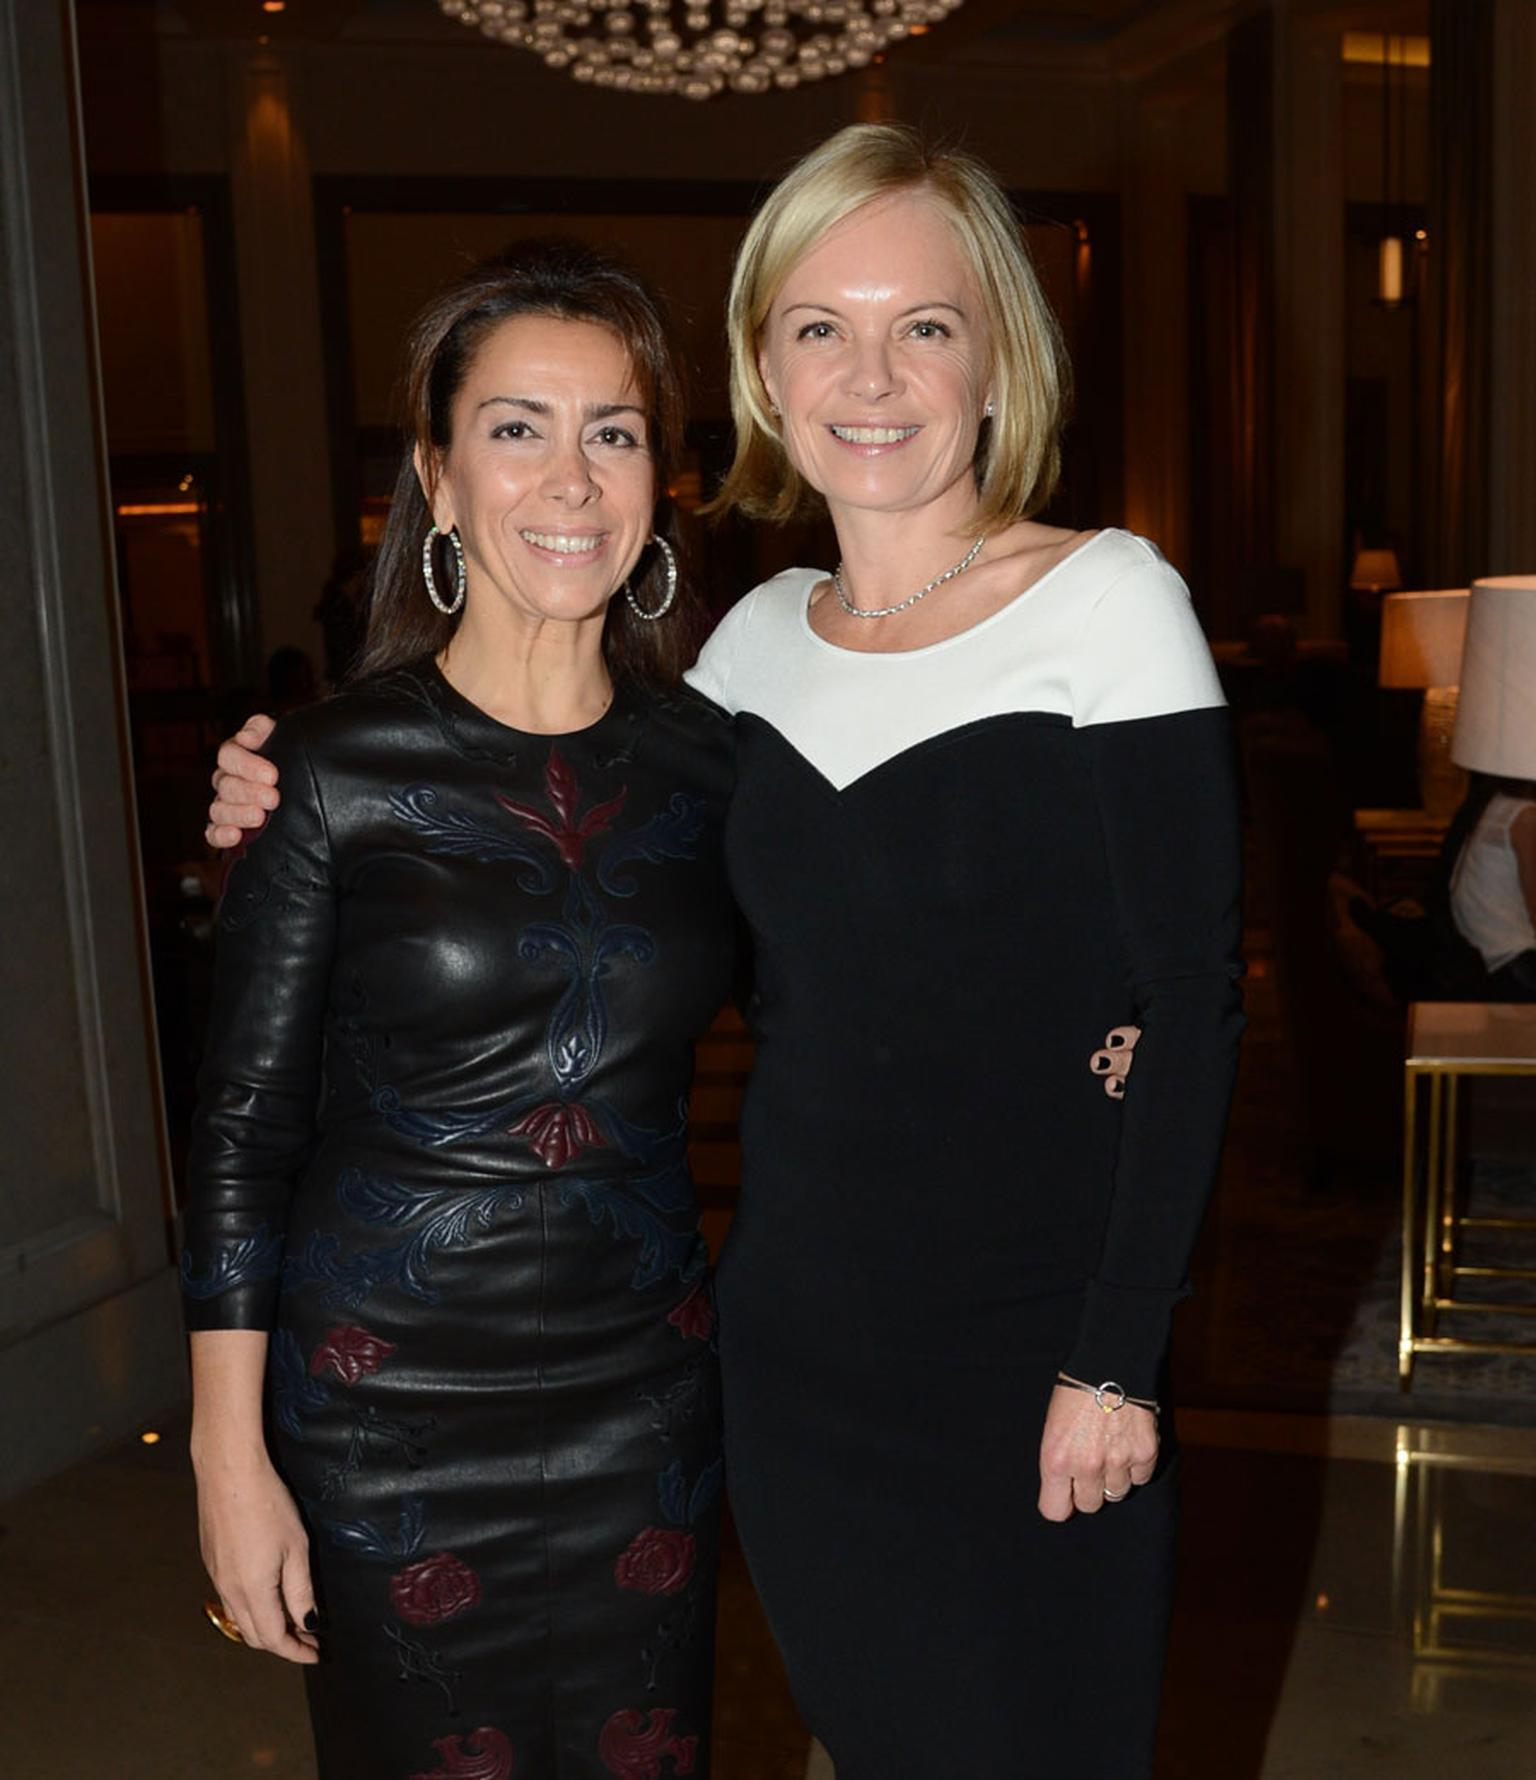 Boodles-GREAT-bangle-Mariella-Frostrup-Karen-Ruimy-charity-founders